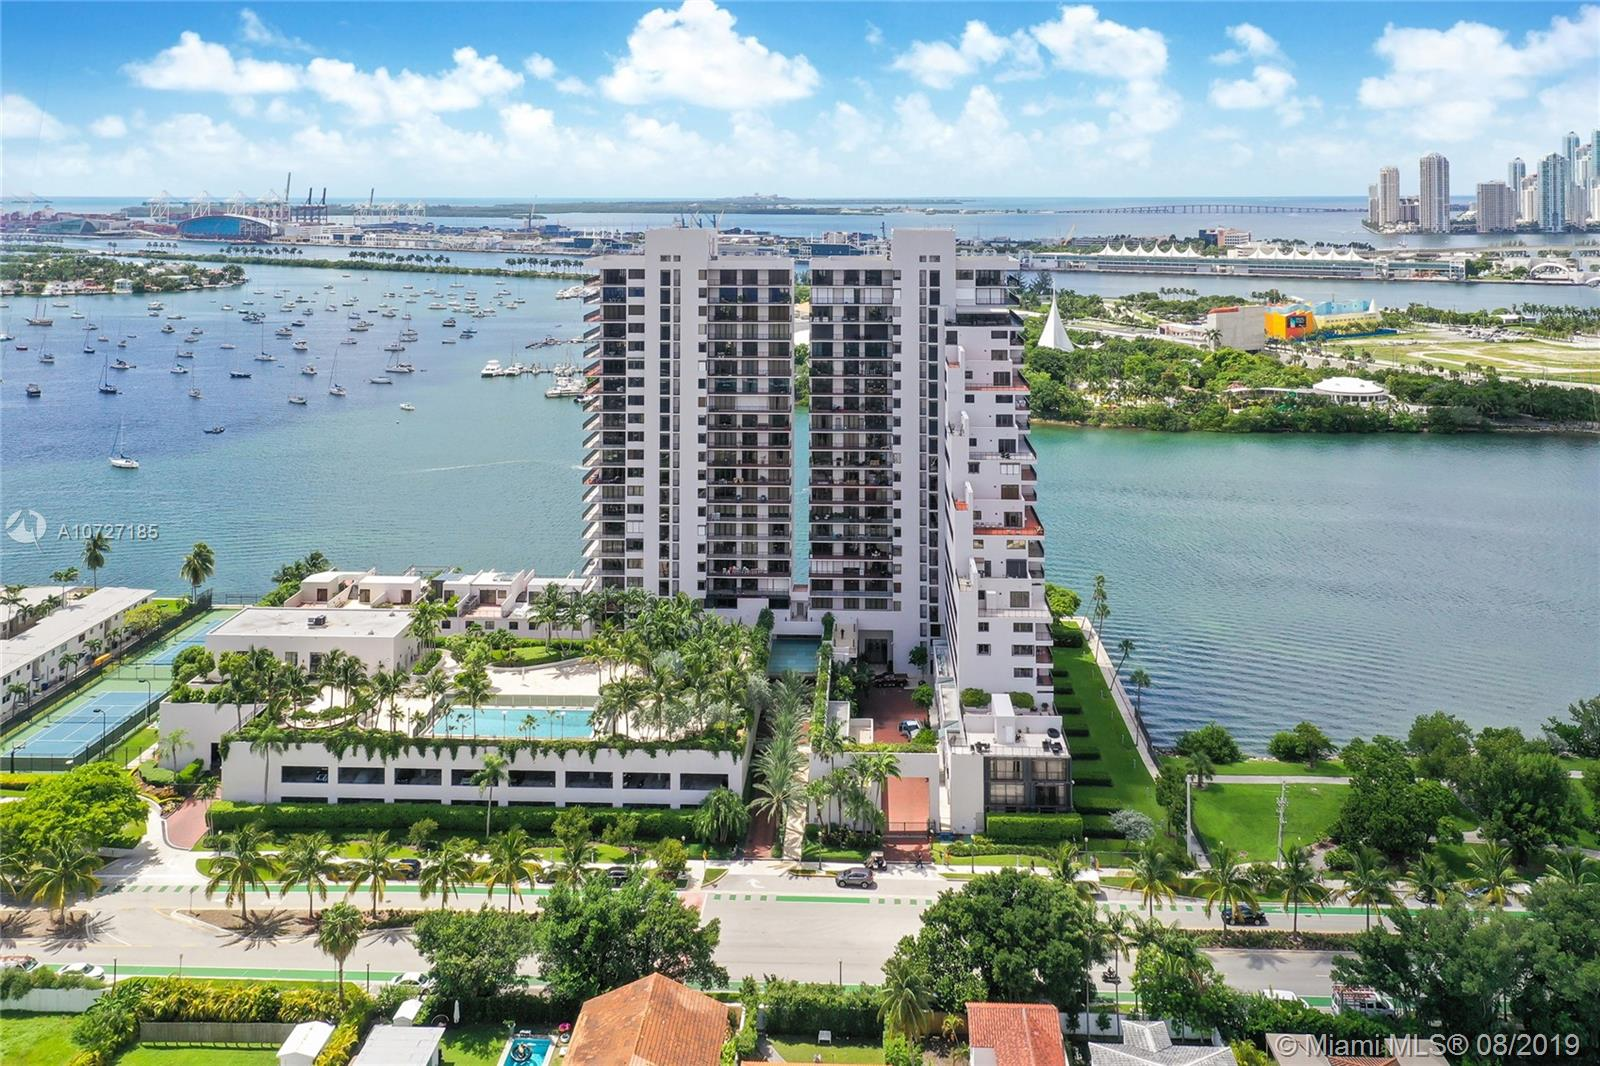 KILLER VIEWS! Stand-alone building on prime waterfront with unobstructed views as far as the eye can see. A daily treat to have full panoramic views of Downtown Miami, Atlantic Ocean, Biscayne Bay, Cruise Ships, and all Venetian Islands. Spectacular sunsets are the perfect ending to the day. And, nighttime sky line views will take your breath away. Light and bright flow through unit is impeccably maintained with floor-to ceiling glass. Easily entertain with the use of two XL balcony's providing different vantage points for views and access from living spaces, kitchen, and bedrooms.Amenities with fitness center, 2 pools, 2 lighted tennis courts, childrens play area, BBQ area, 24 hr security, and more. Building has undergone extensive renovations. Seller has paid ALL assessments in full!